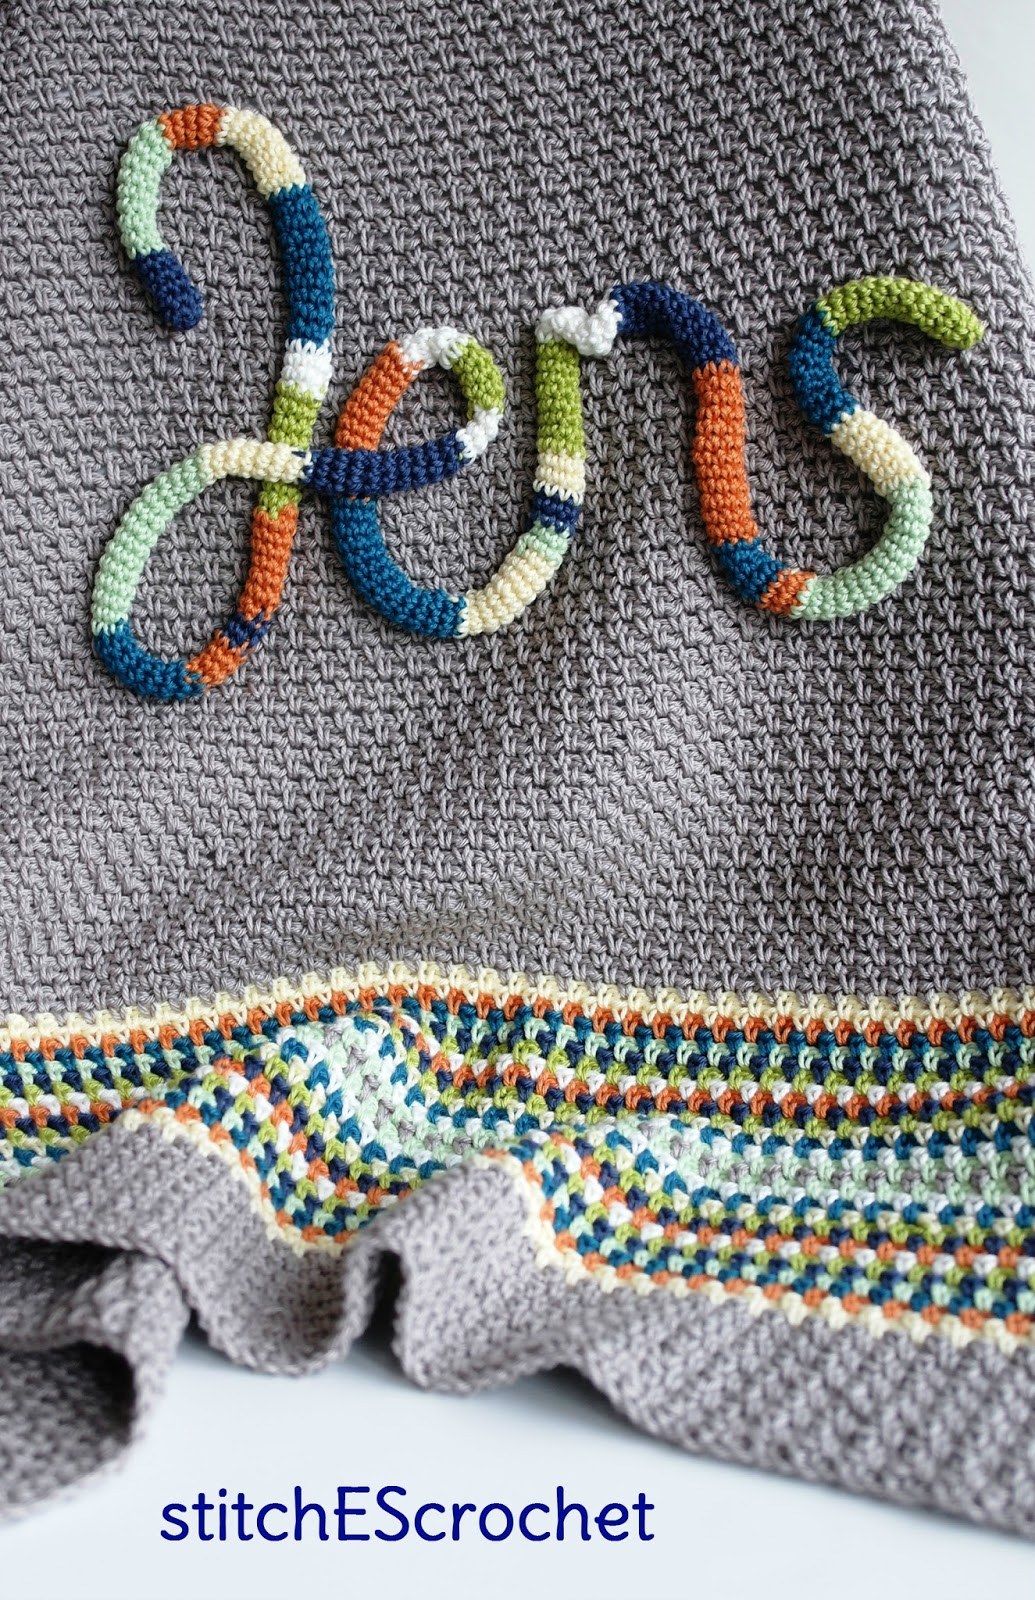 Stitches Crochet Personalized Baby Blanket For Jens Free Pattern